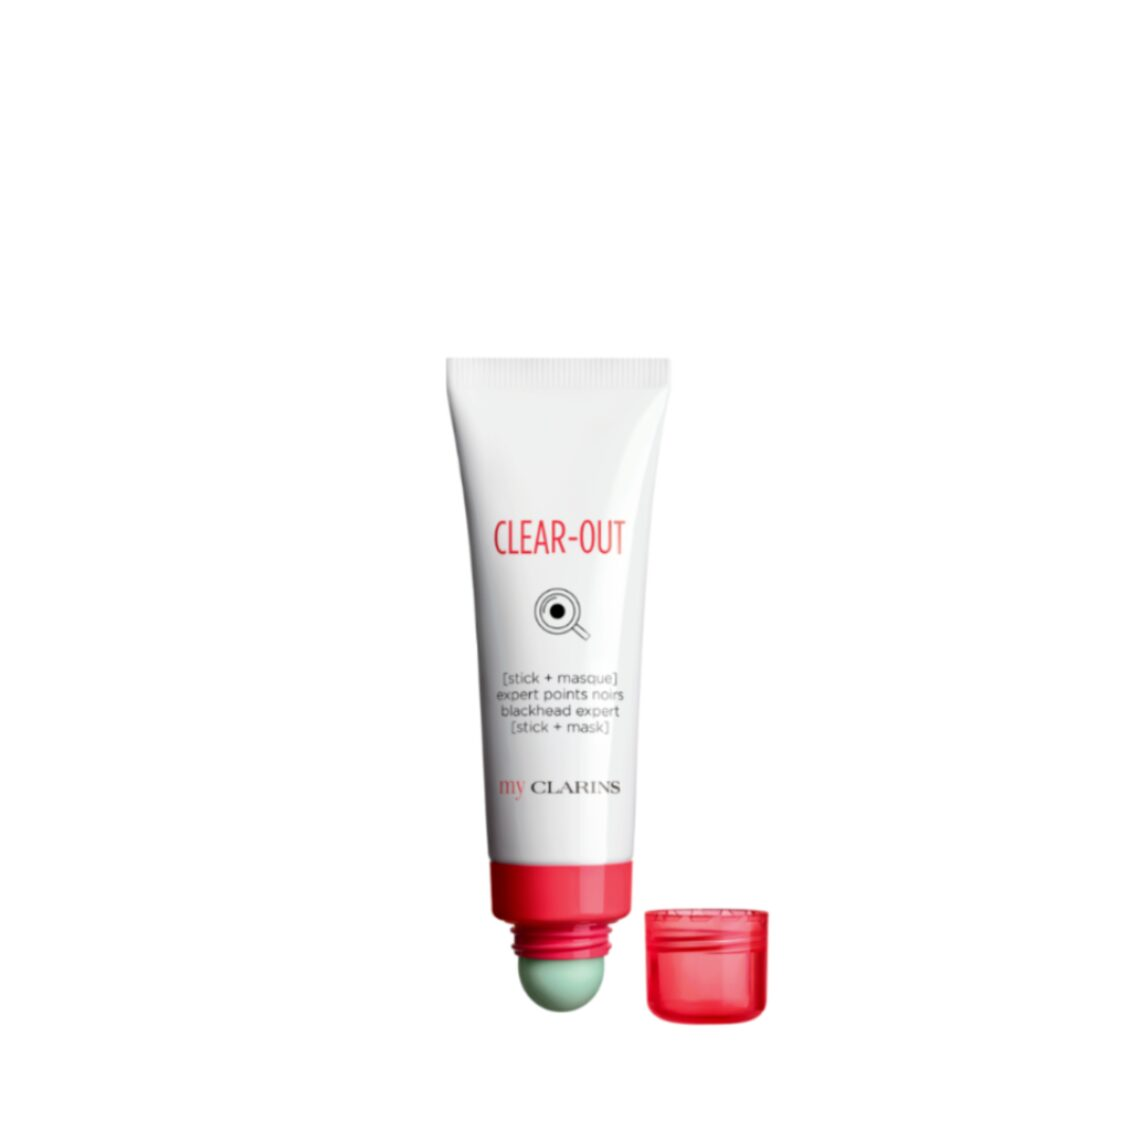 Clarins My Clarins CLEAR-OUT Blackhead Expert Stick  Mask 50ml